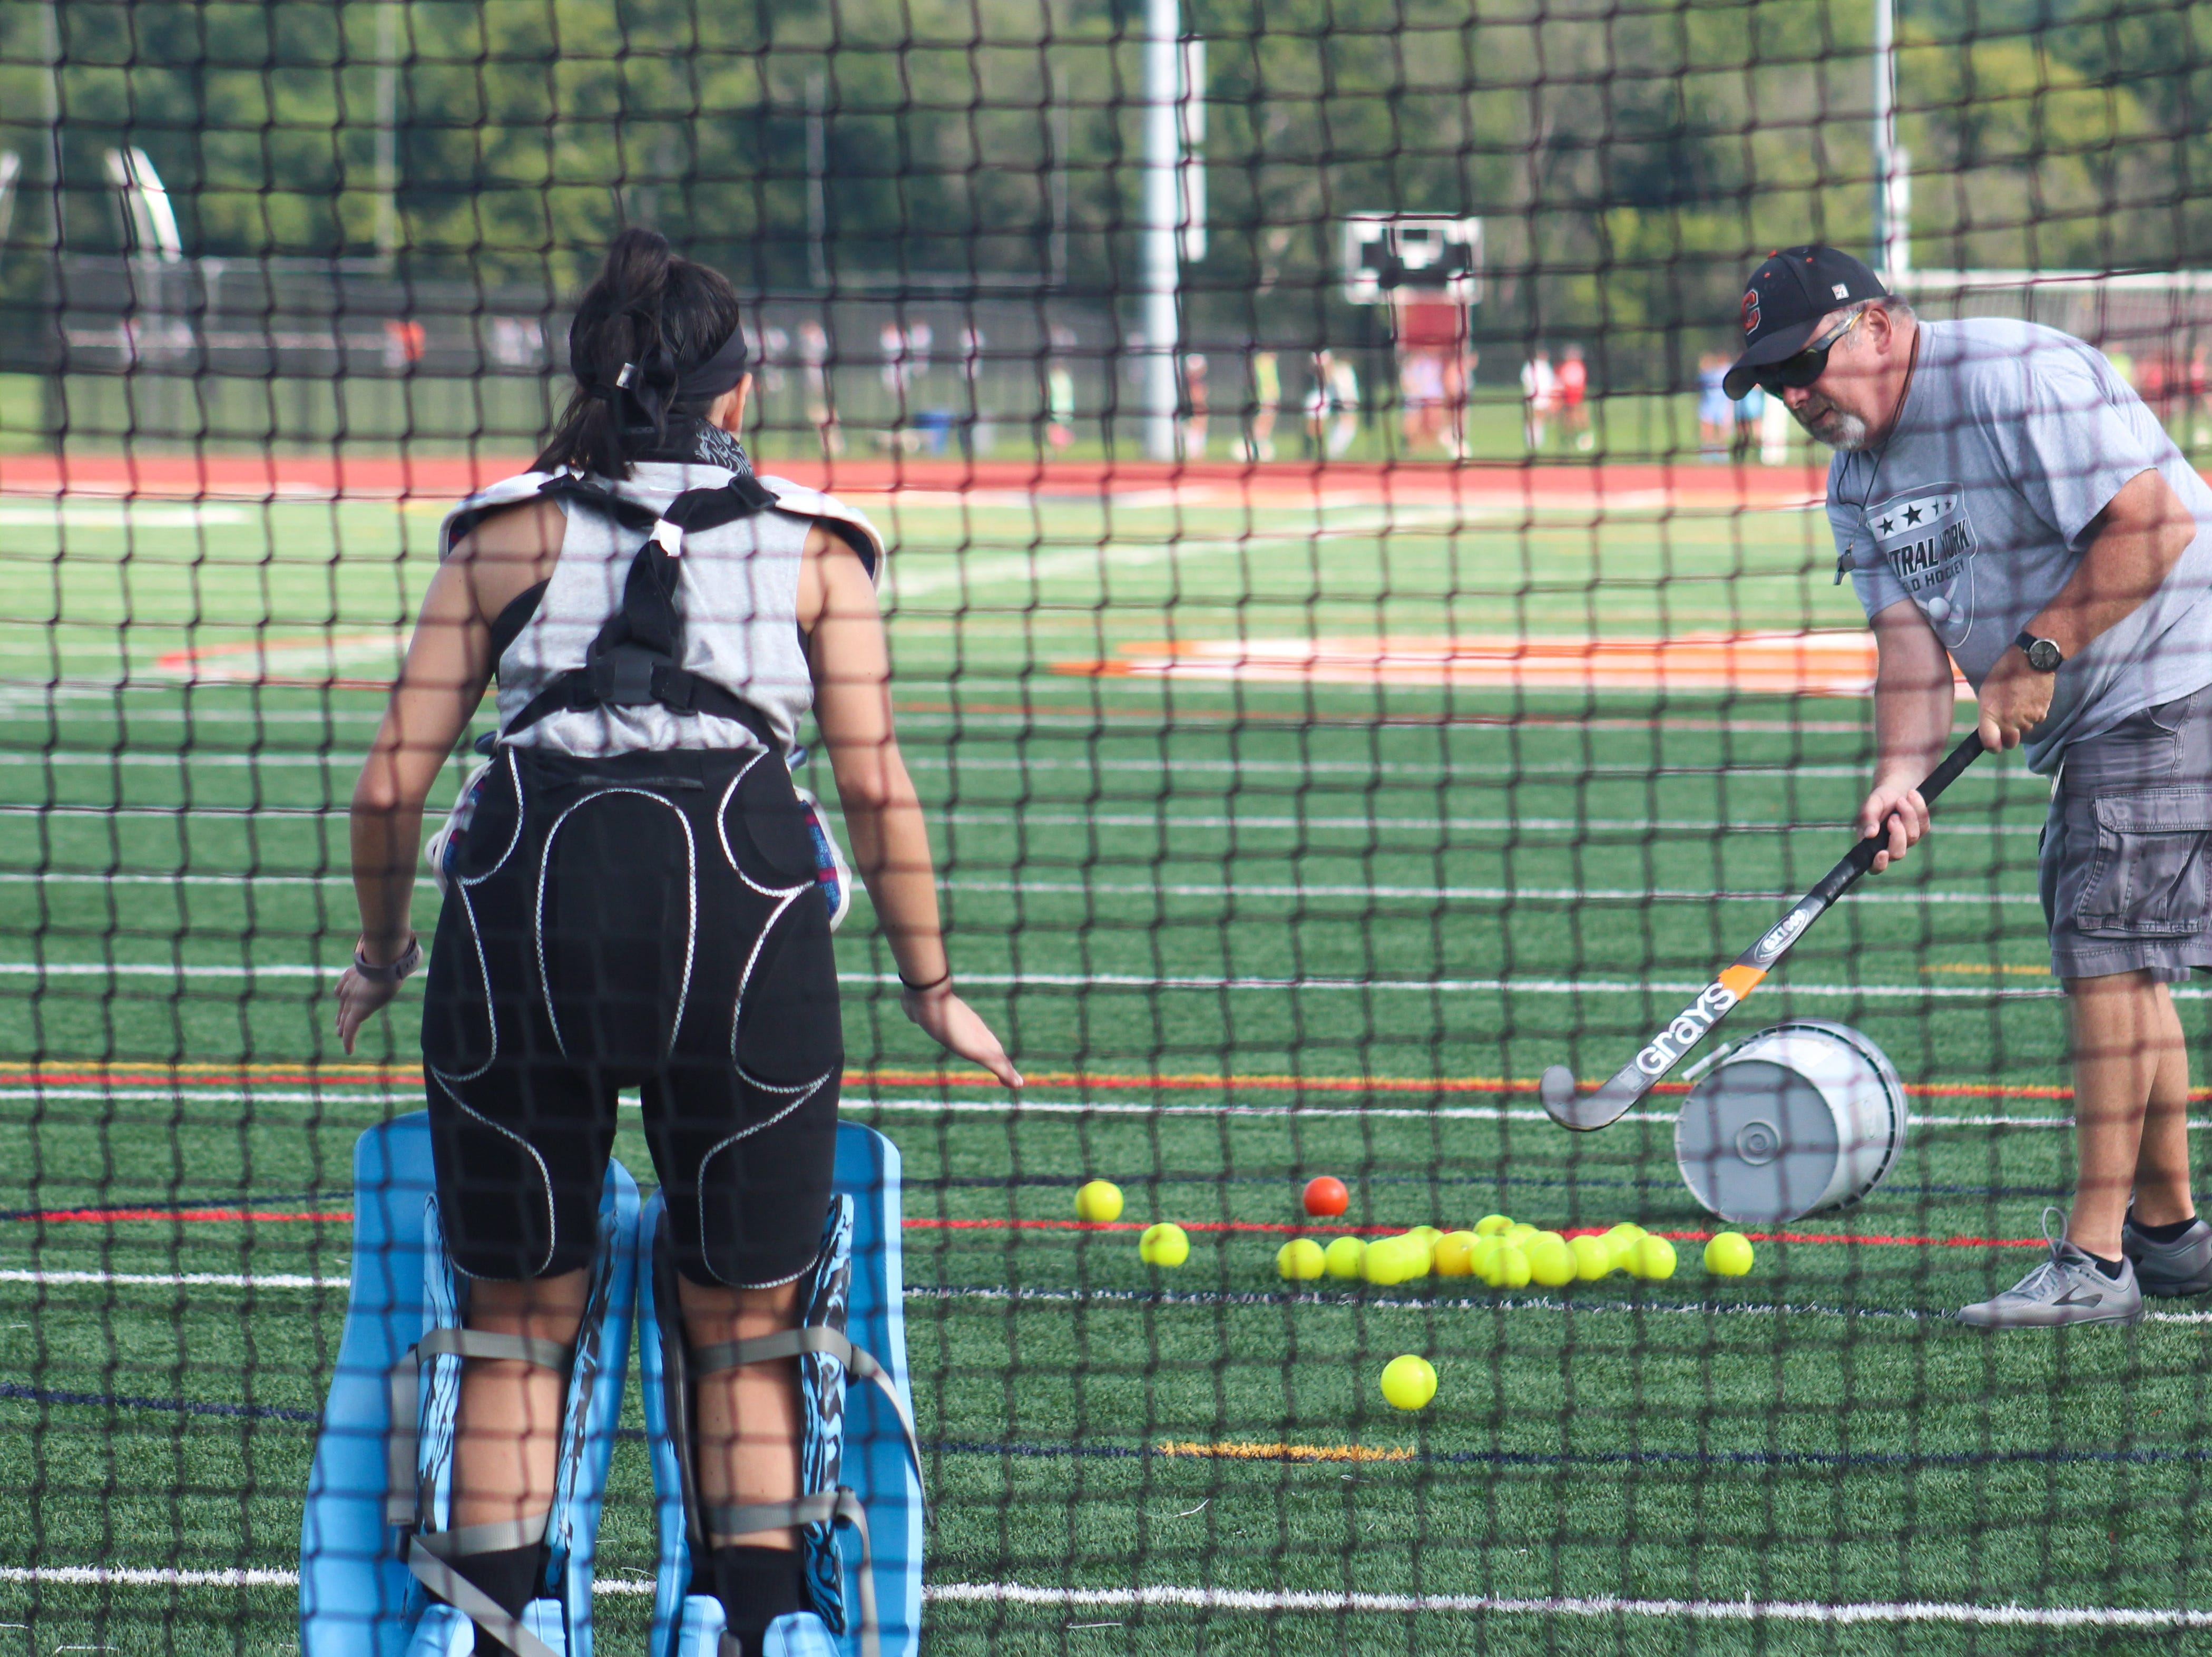 A Central York field hockey goalie practices making saves on August 13, 2018.